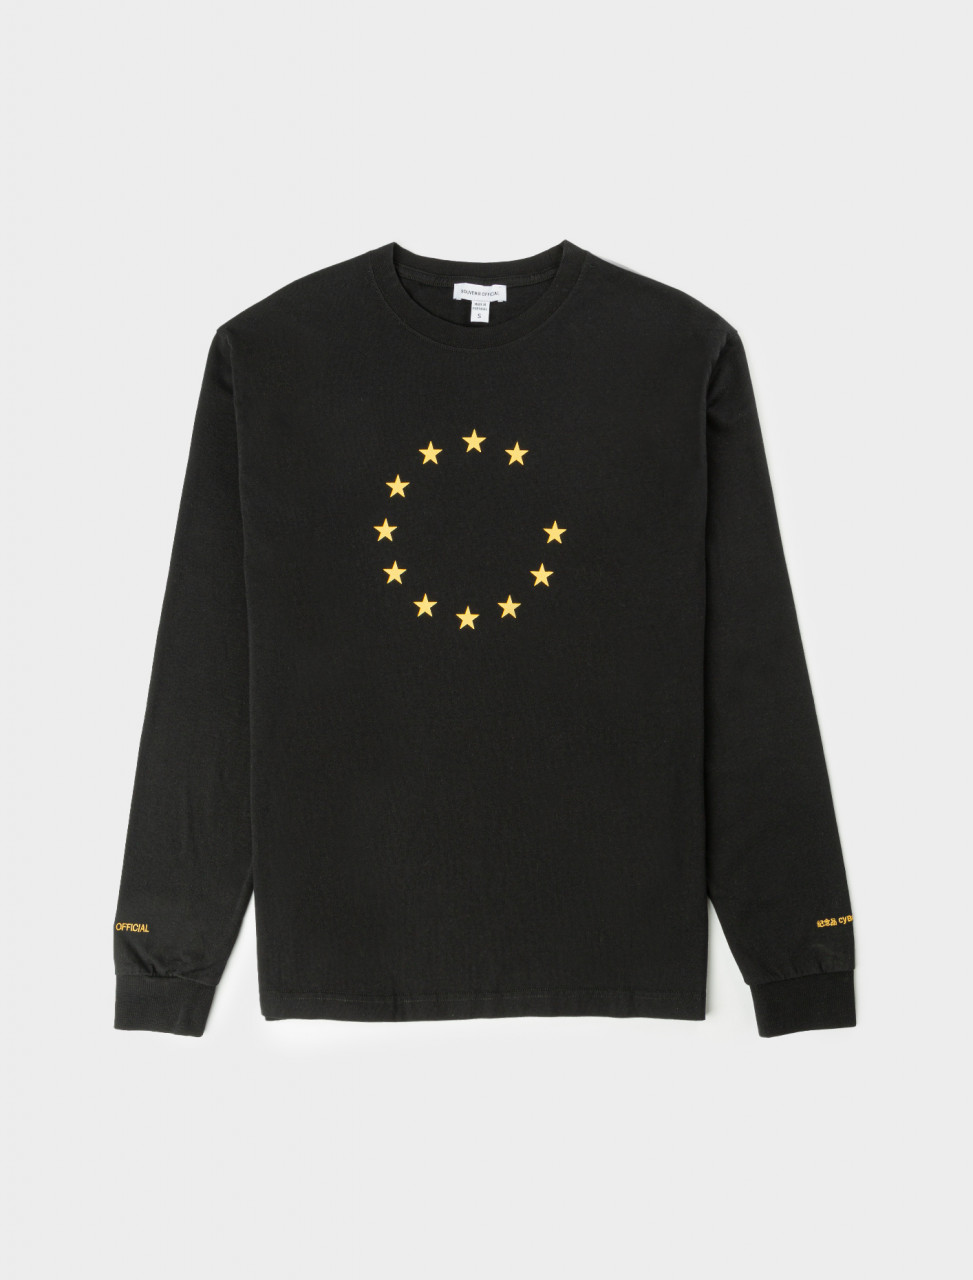 EUNIFY Longsleeve in Black